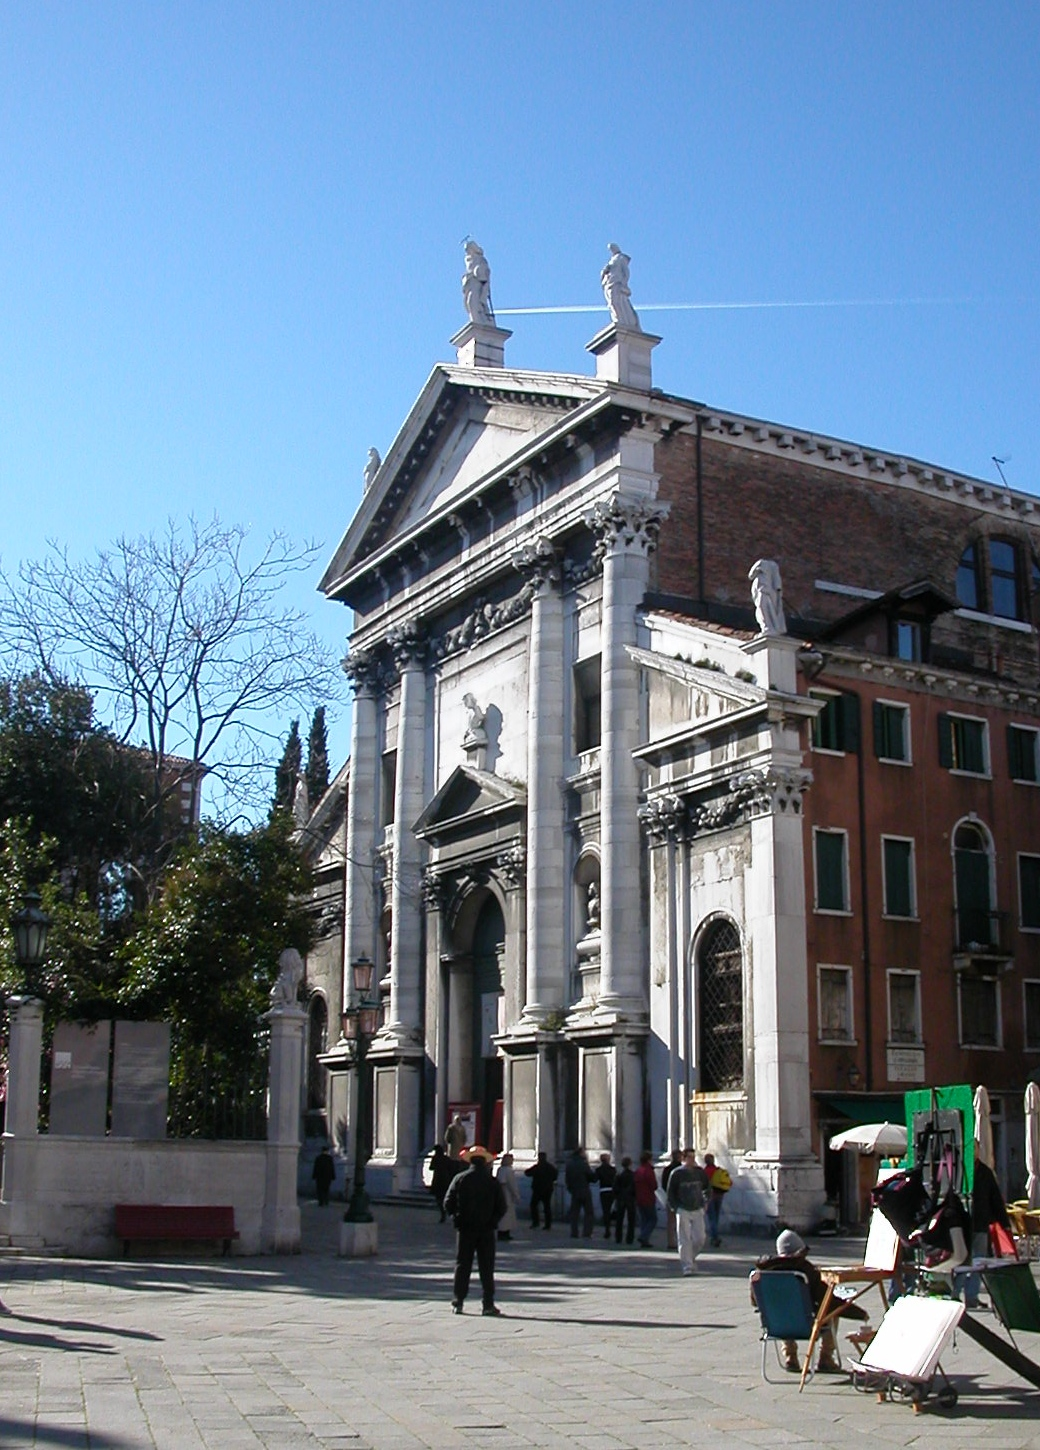 http://upload.wikimedia.org/wikipedia/commons/0/0a/Venezia_-_Chiesa_di_S.Vidal.jpg